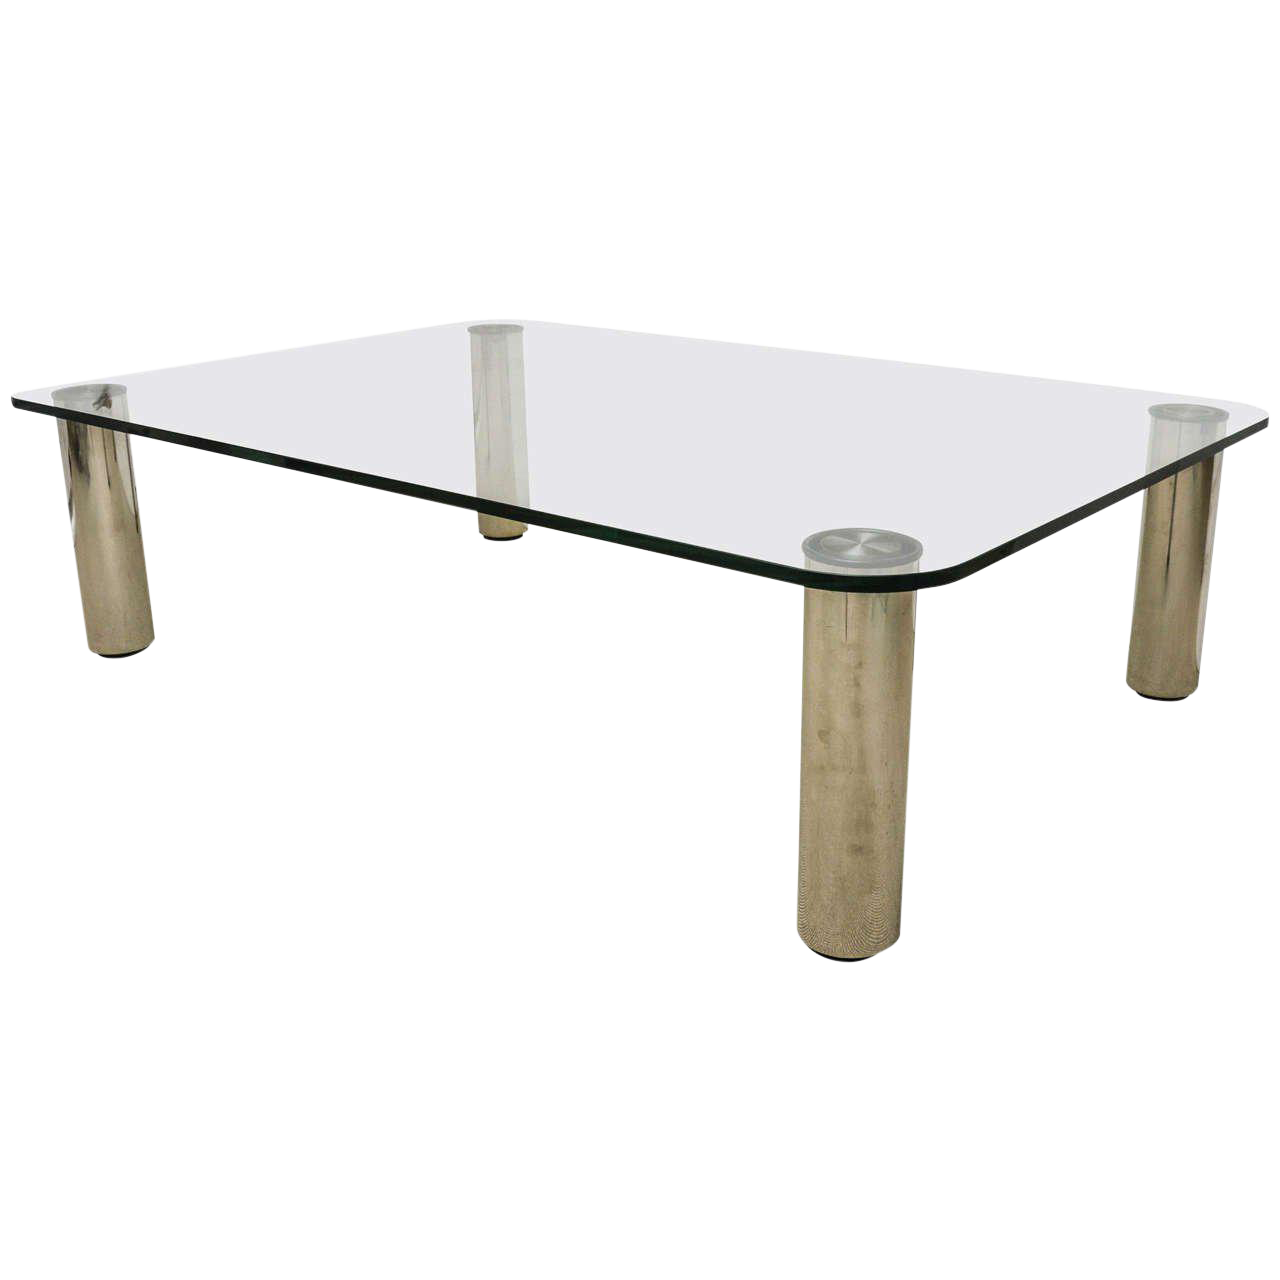 Incredible marcuso coffee table by marco zanuso for zanotta decaso greentooth Gallery